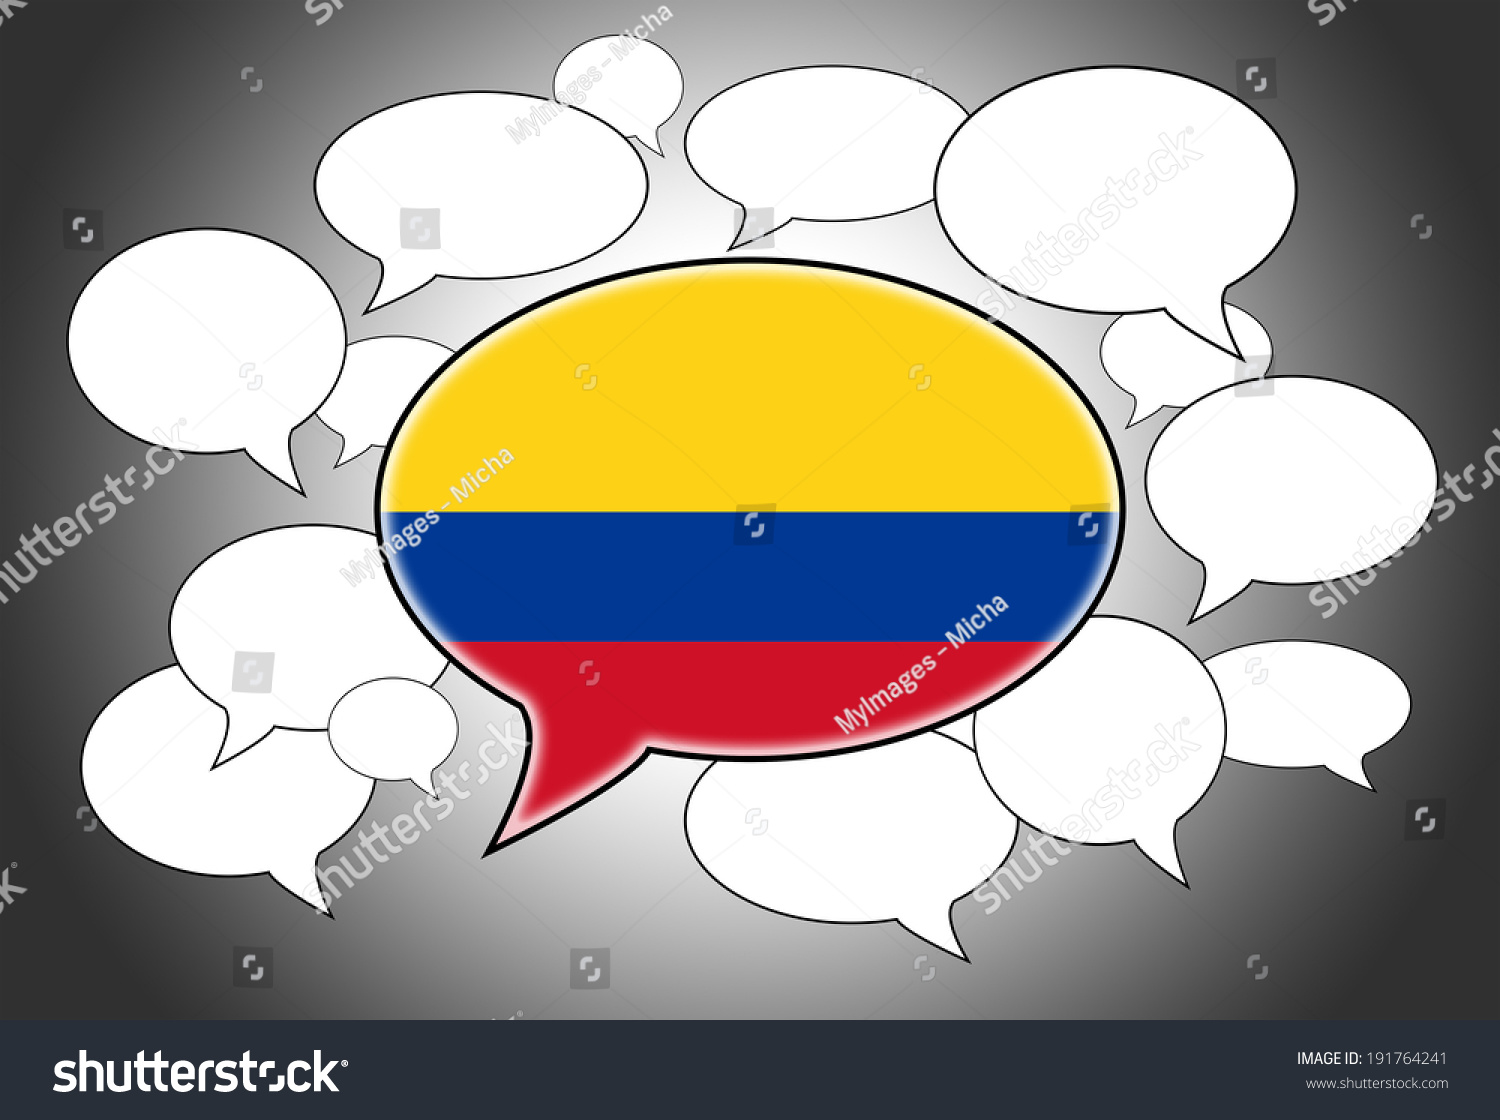 colombia speech There has been too much hatred and vengeance, francis said in a speech at the country's presidential palace.